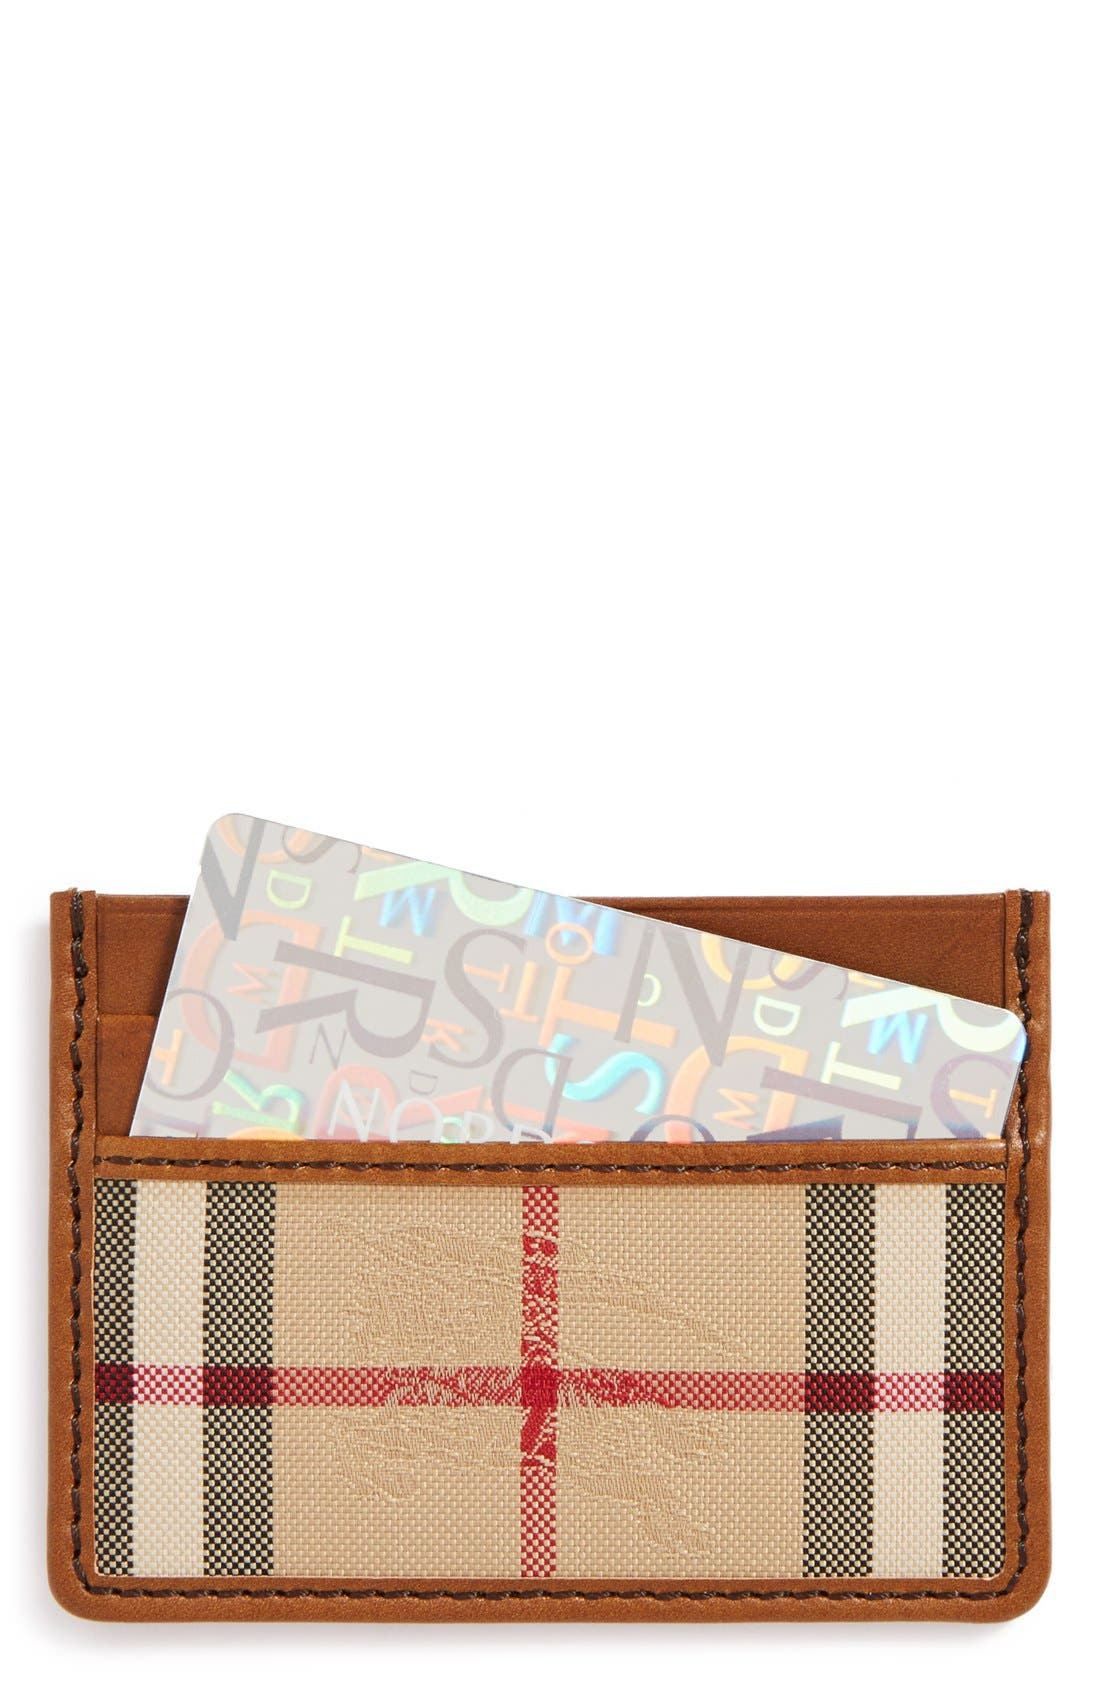 Alternate Image 1 Selected - Burberry Sandon Horseferry Check Card Case